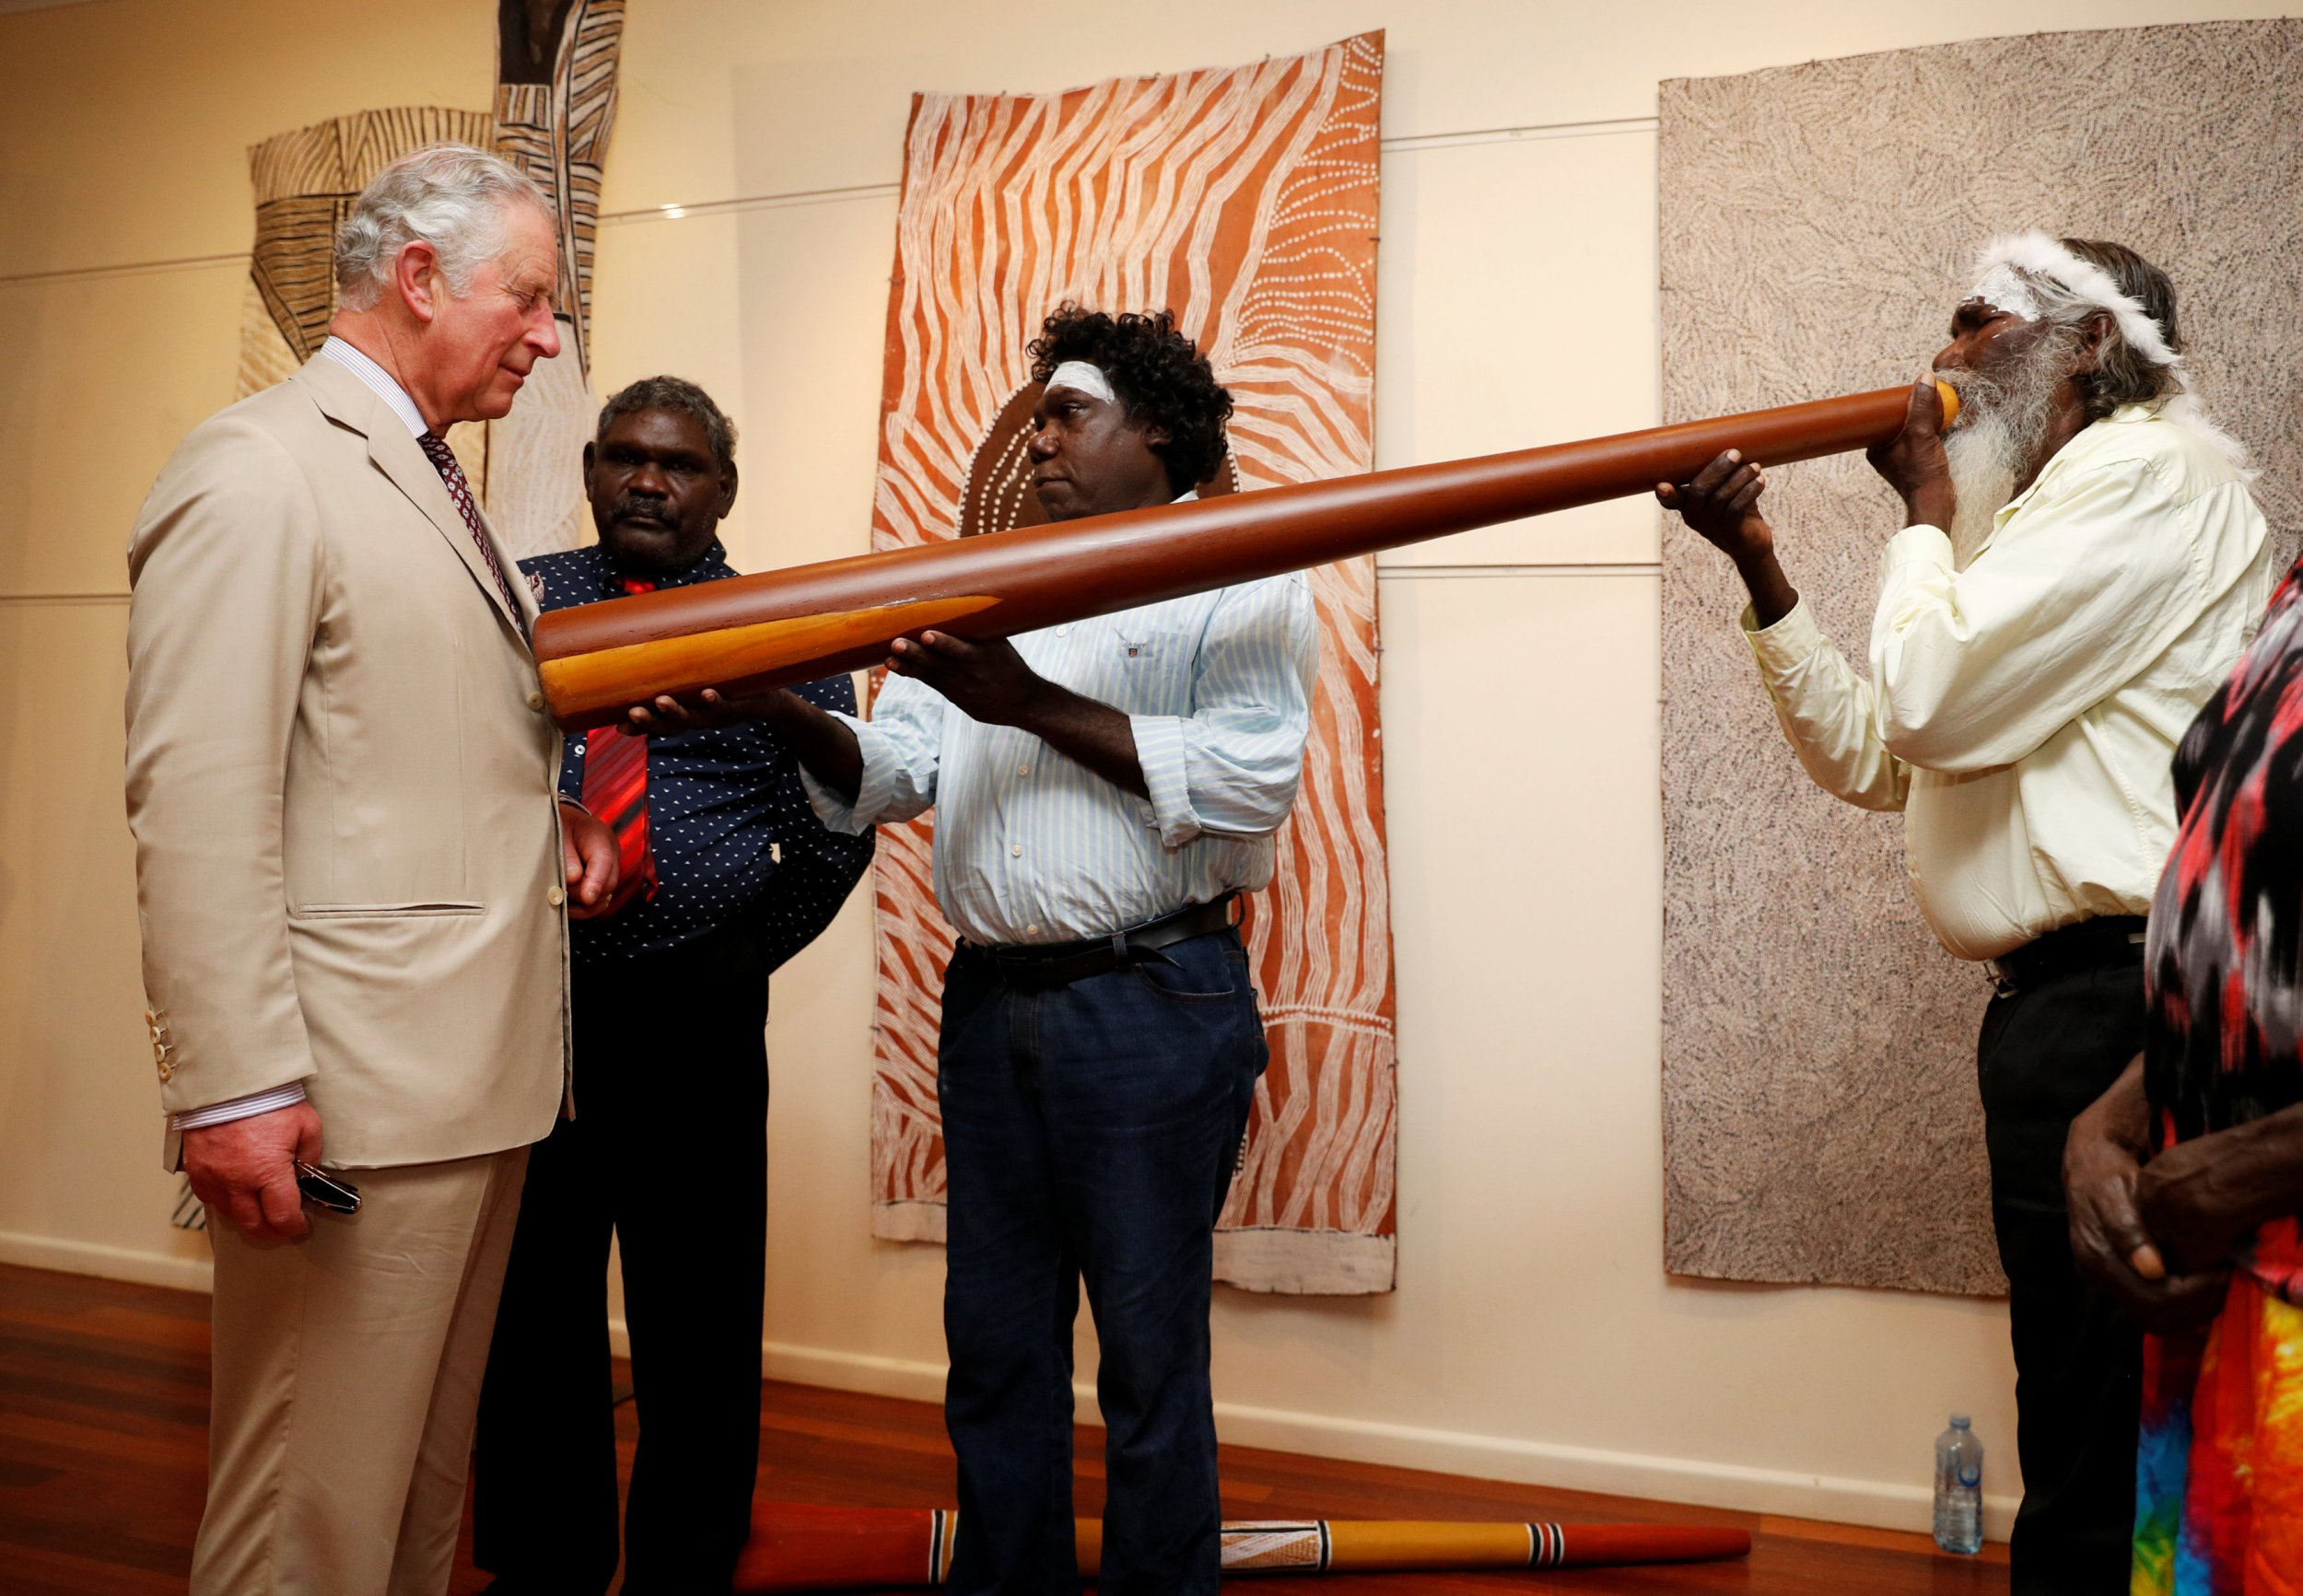 The Prince of Wales takes part in a didgeridoo demonstration during a visit to the Buku-Larrnggay Mulka Centre in Yirrkala, in Australia's Northern Territory. PRESS ASSOCIATION Photo. Picture date: Monday April 9, 2018. See PA story ROYAL Tour. Photo credit should read: Phil Noble/PA Wire